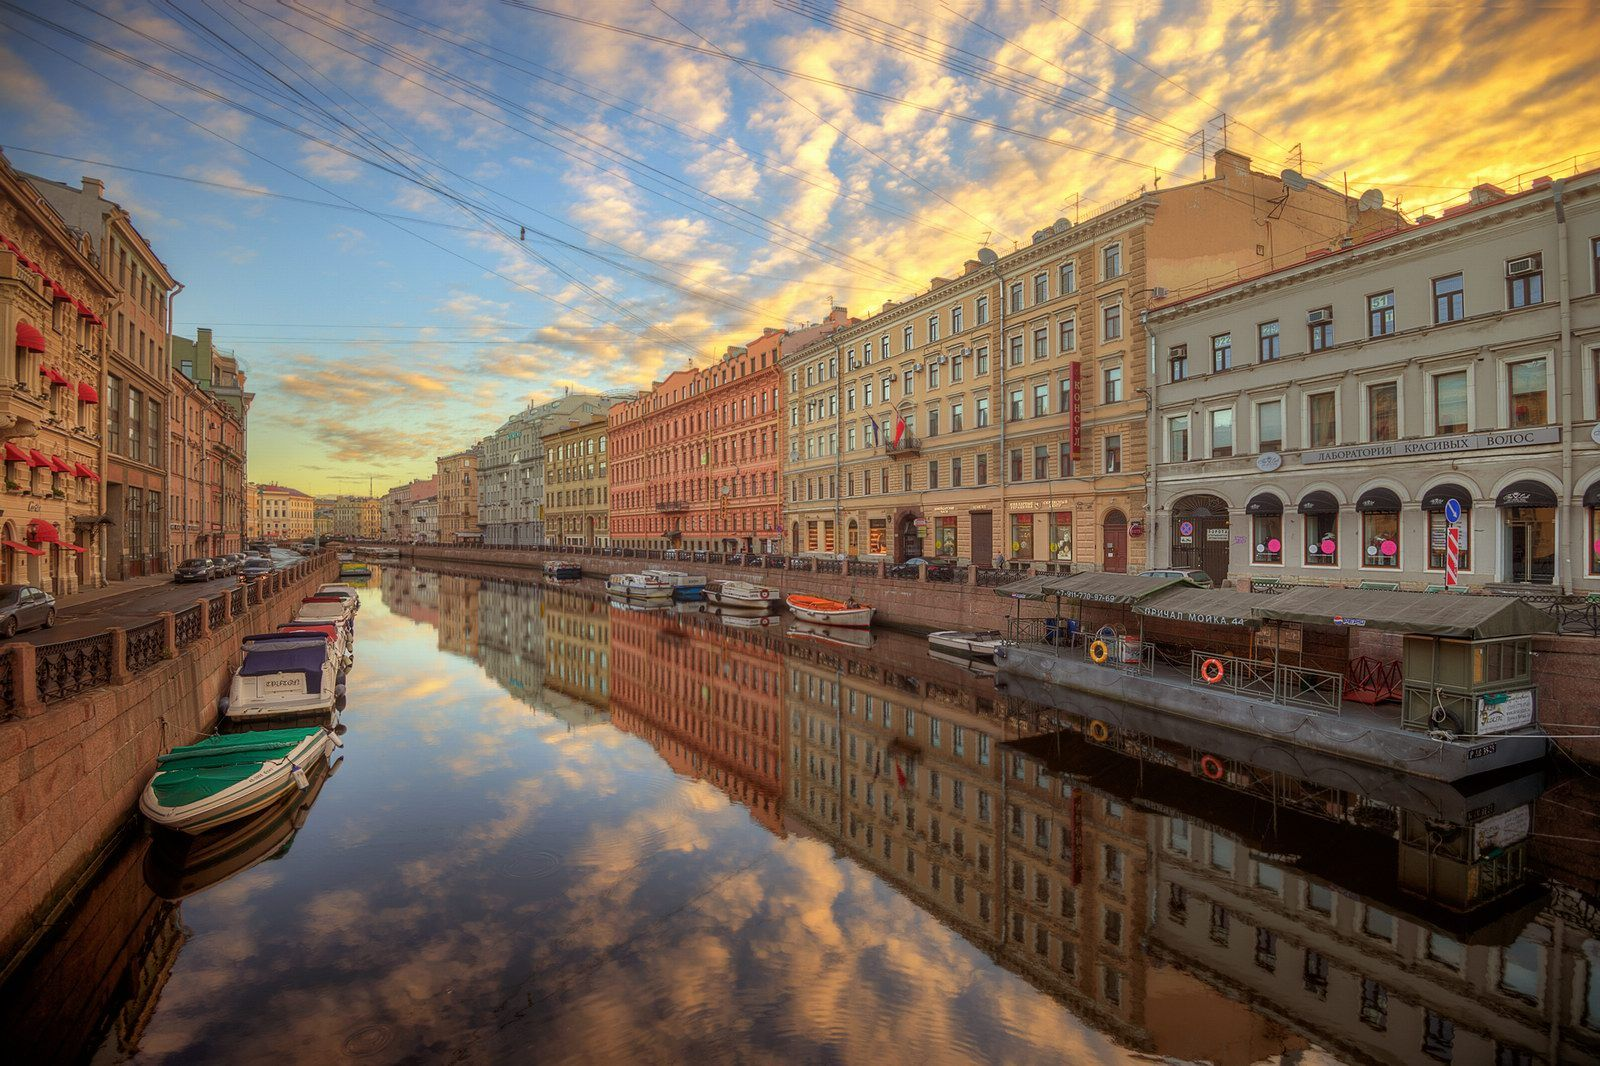 The Moyka River in the center of St. Petersburg, Russia